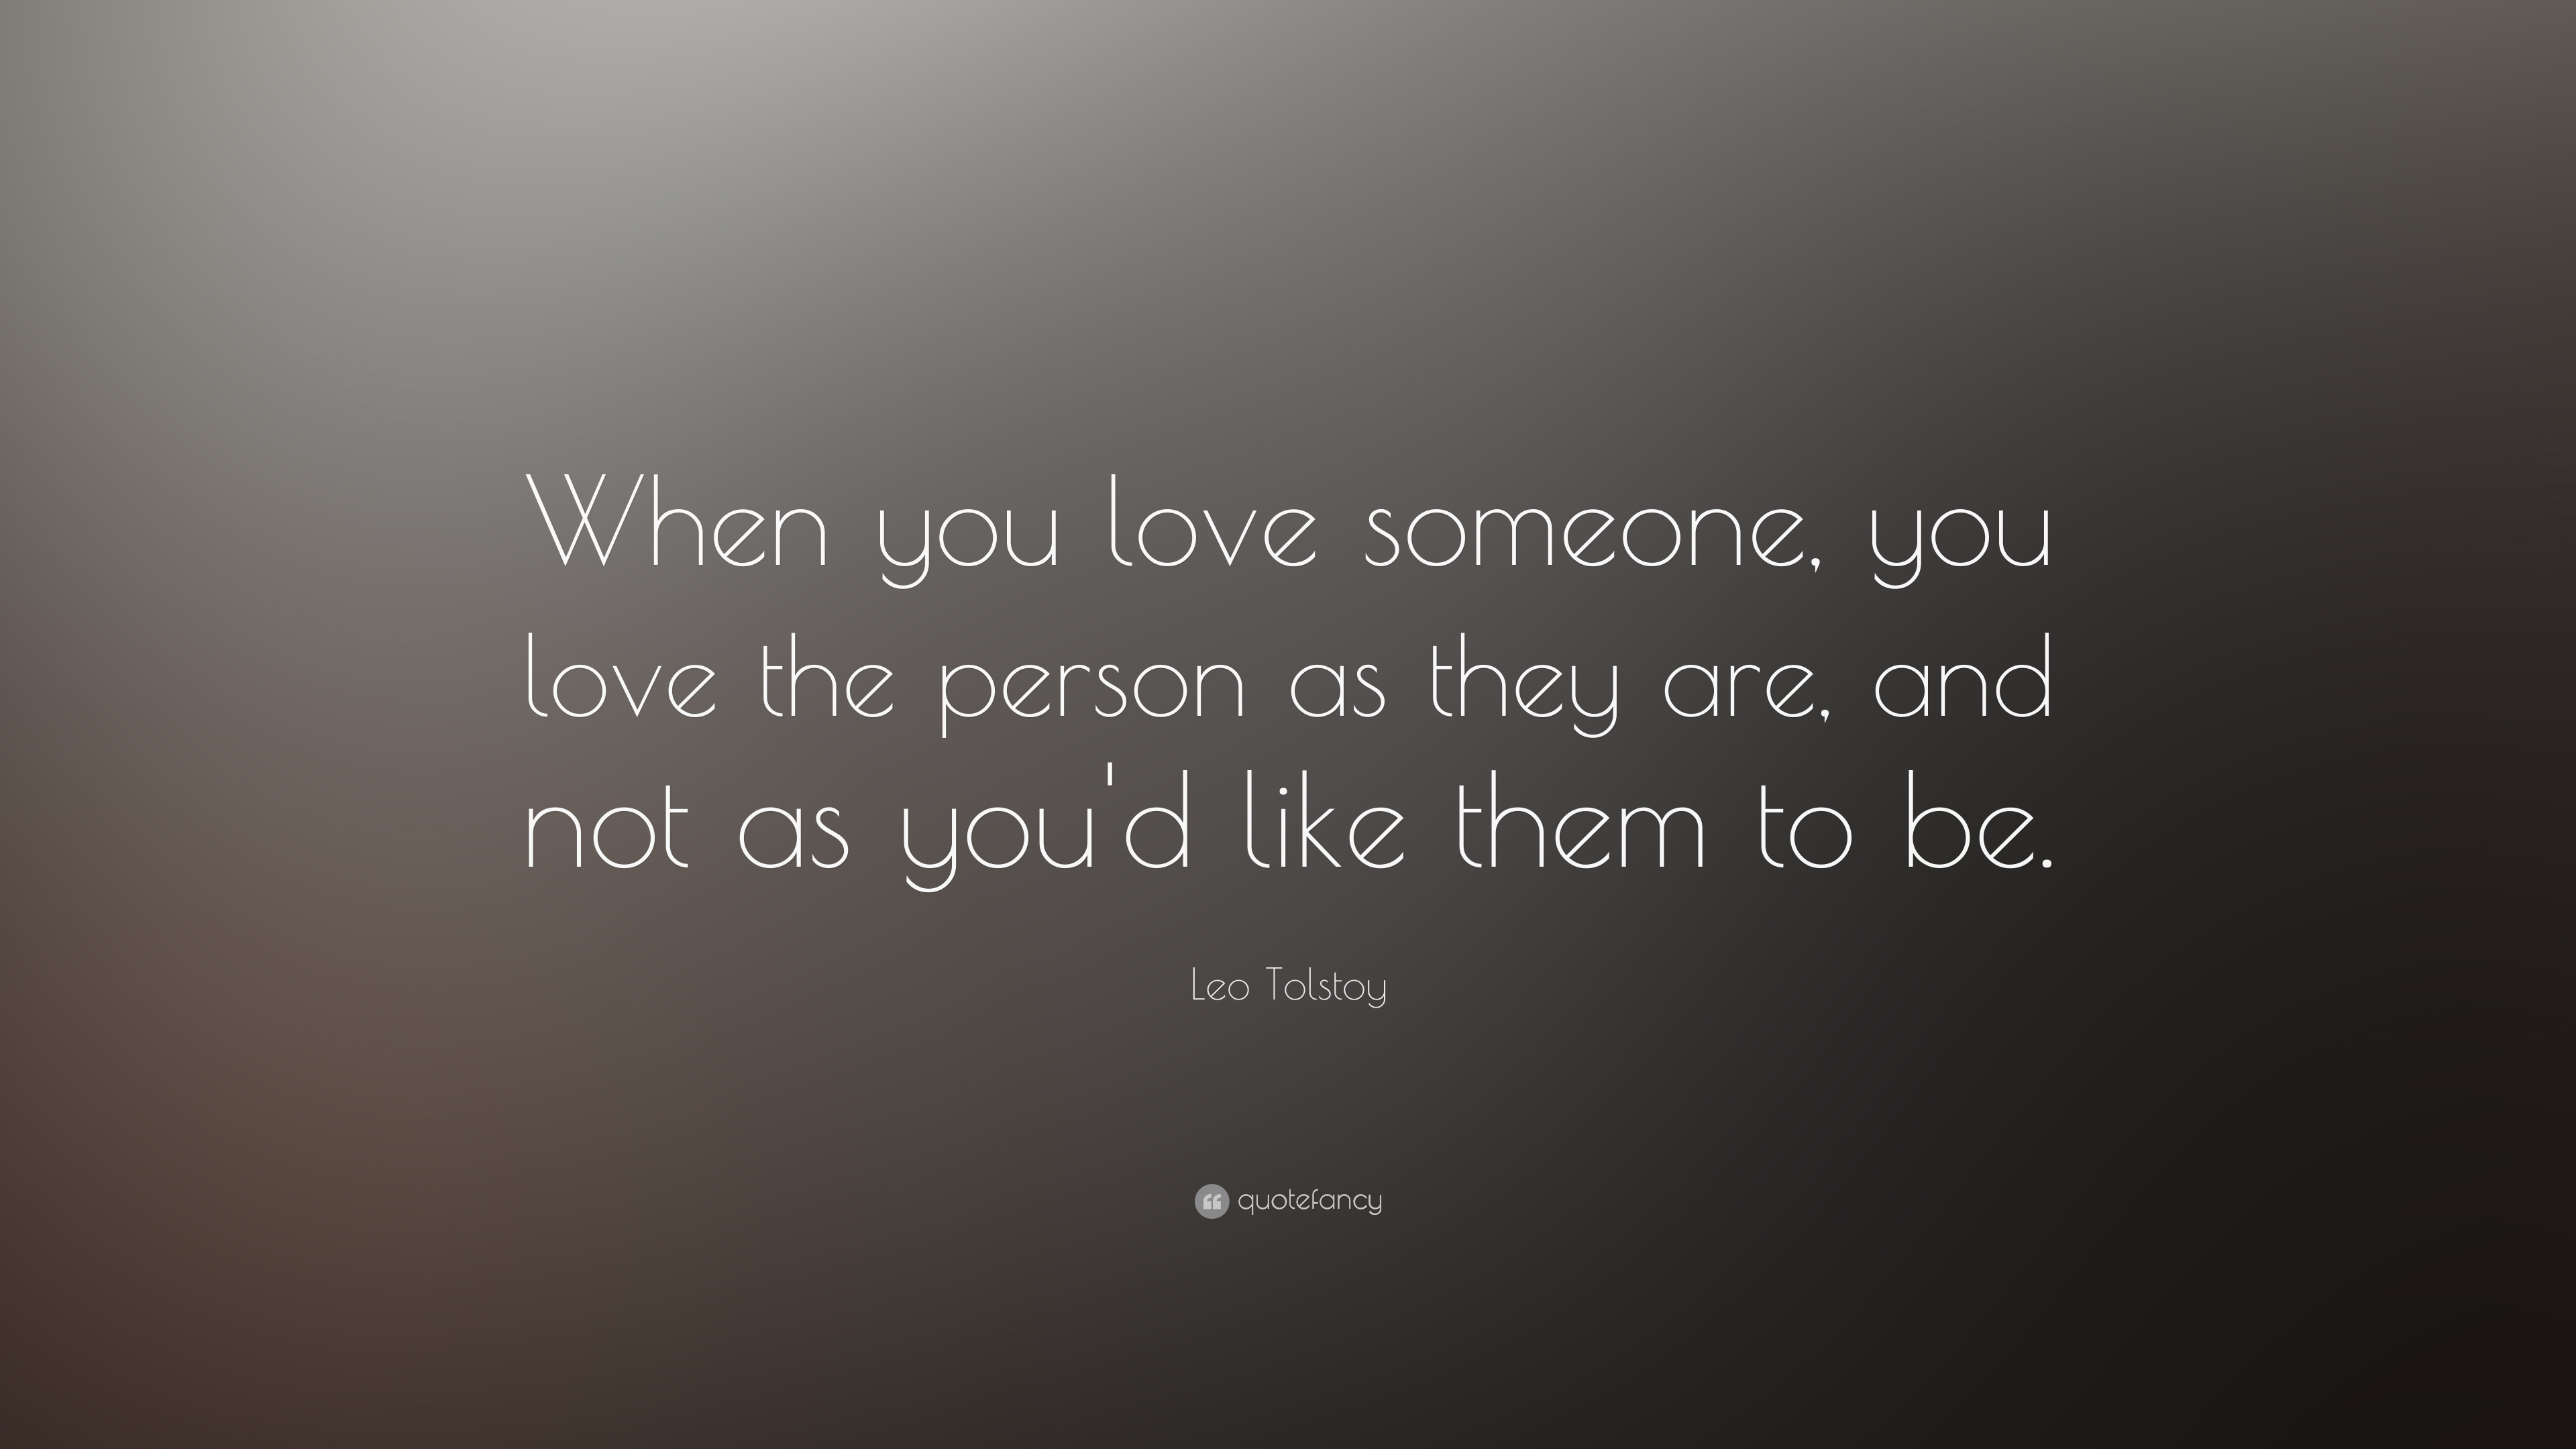 leo tolstoy quote when you love someone you love the